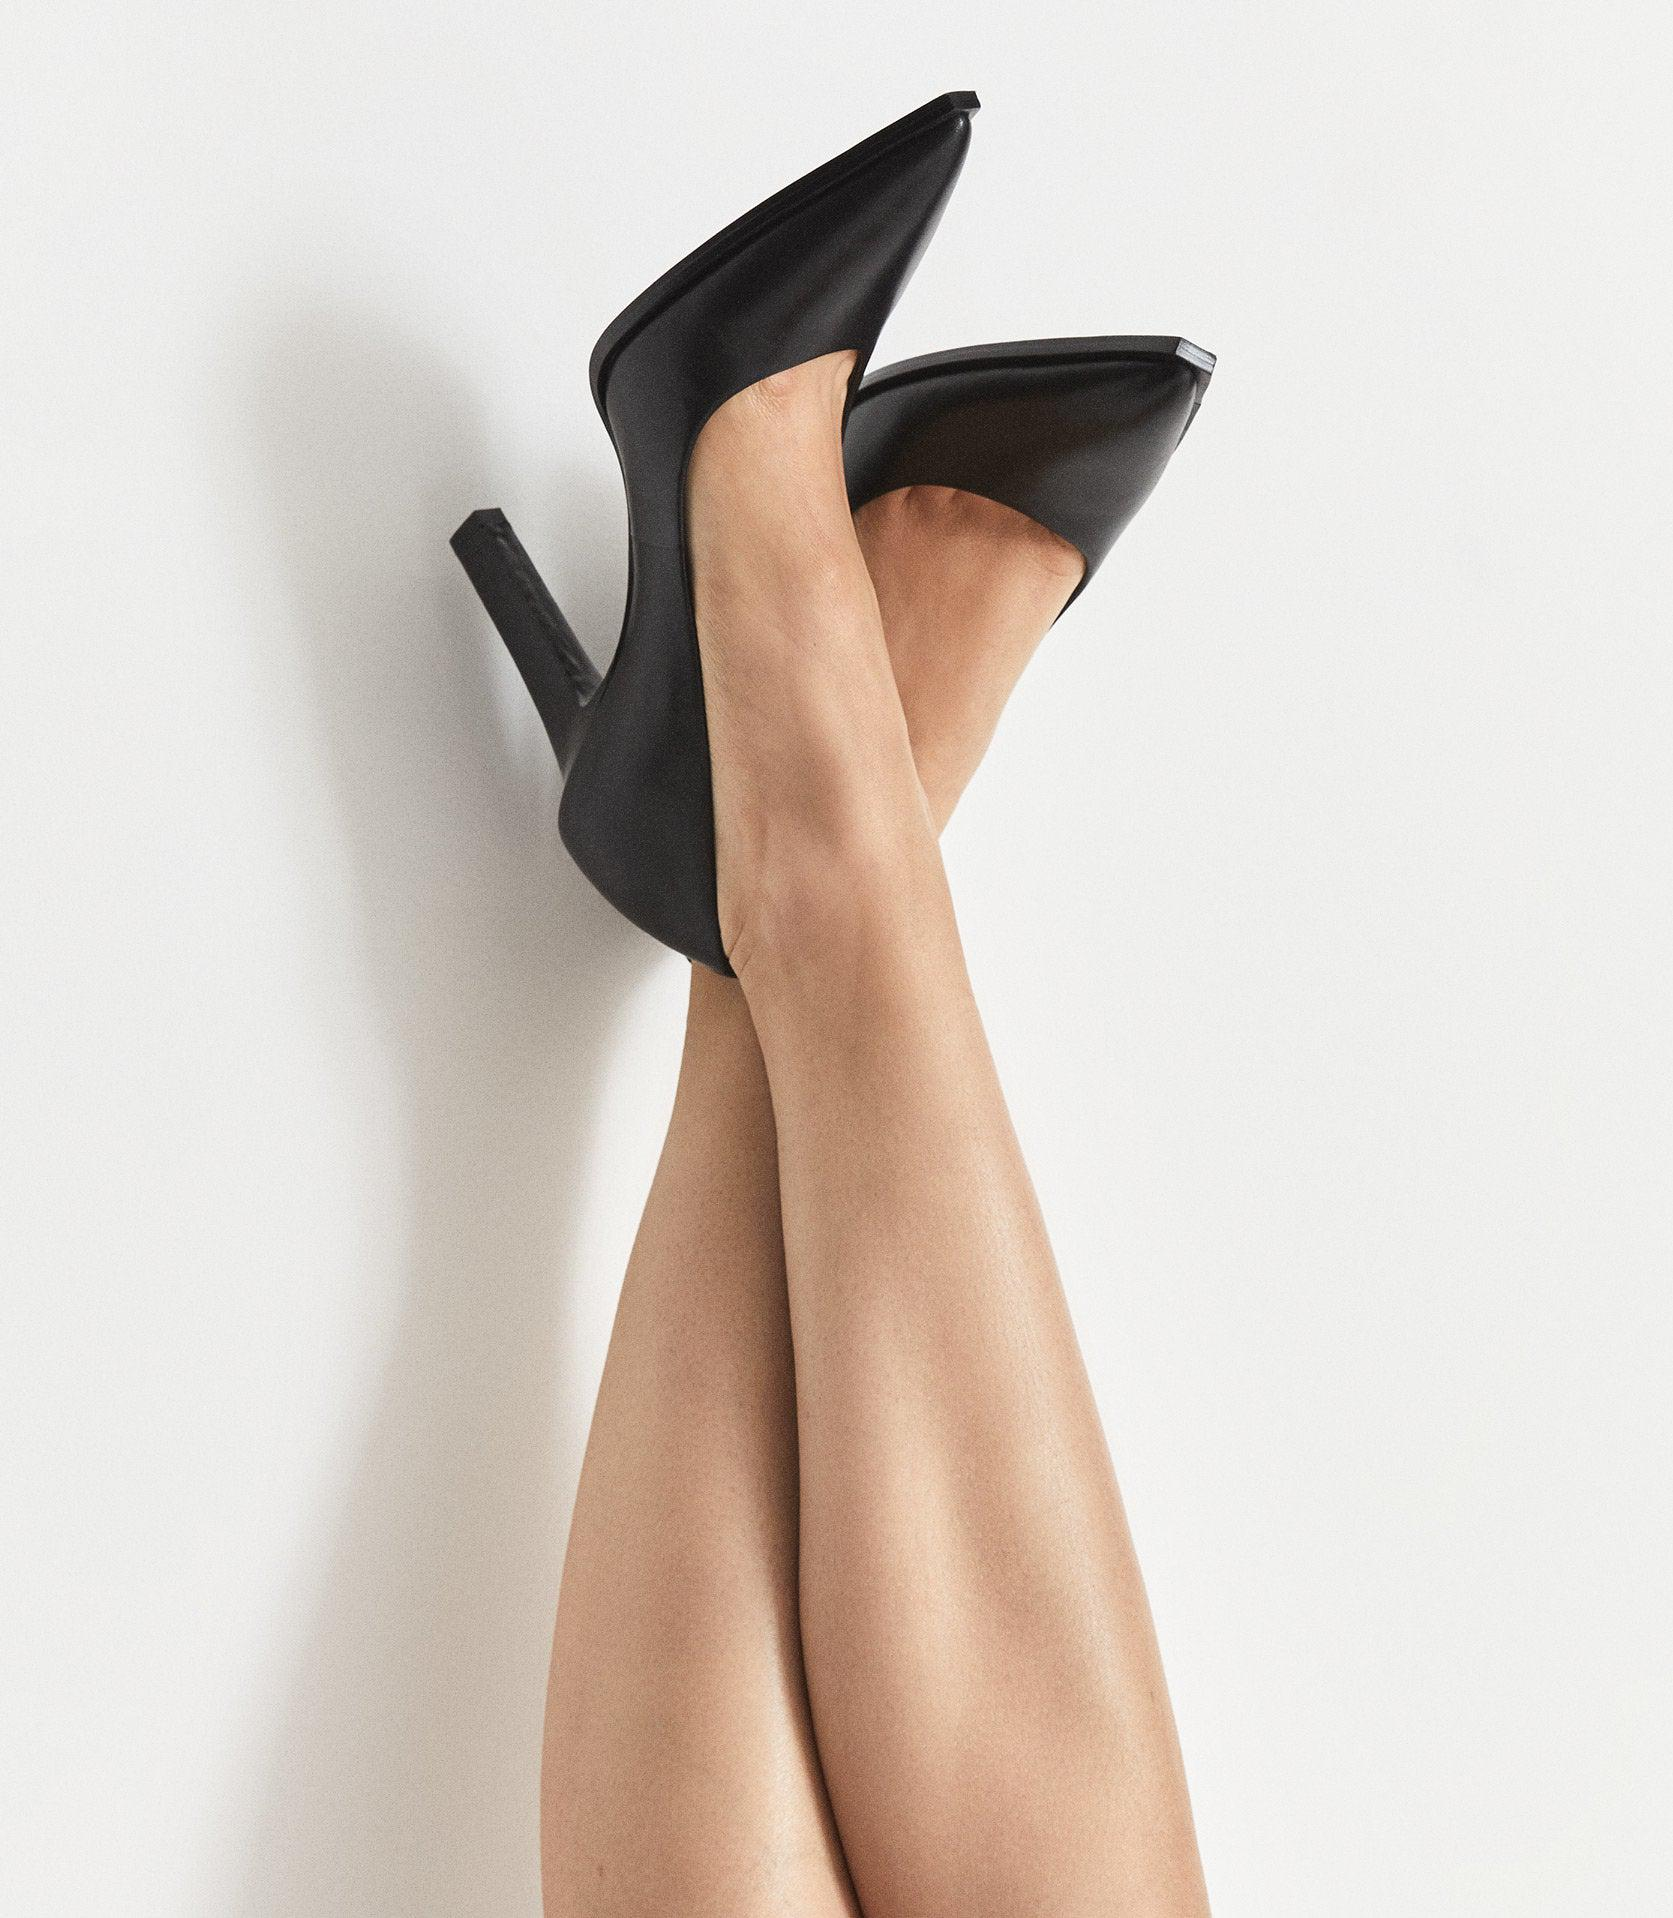 ADA COURT - LEATHER COURT SHOES 6